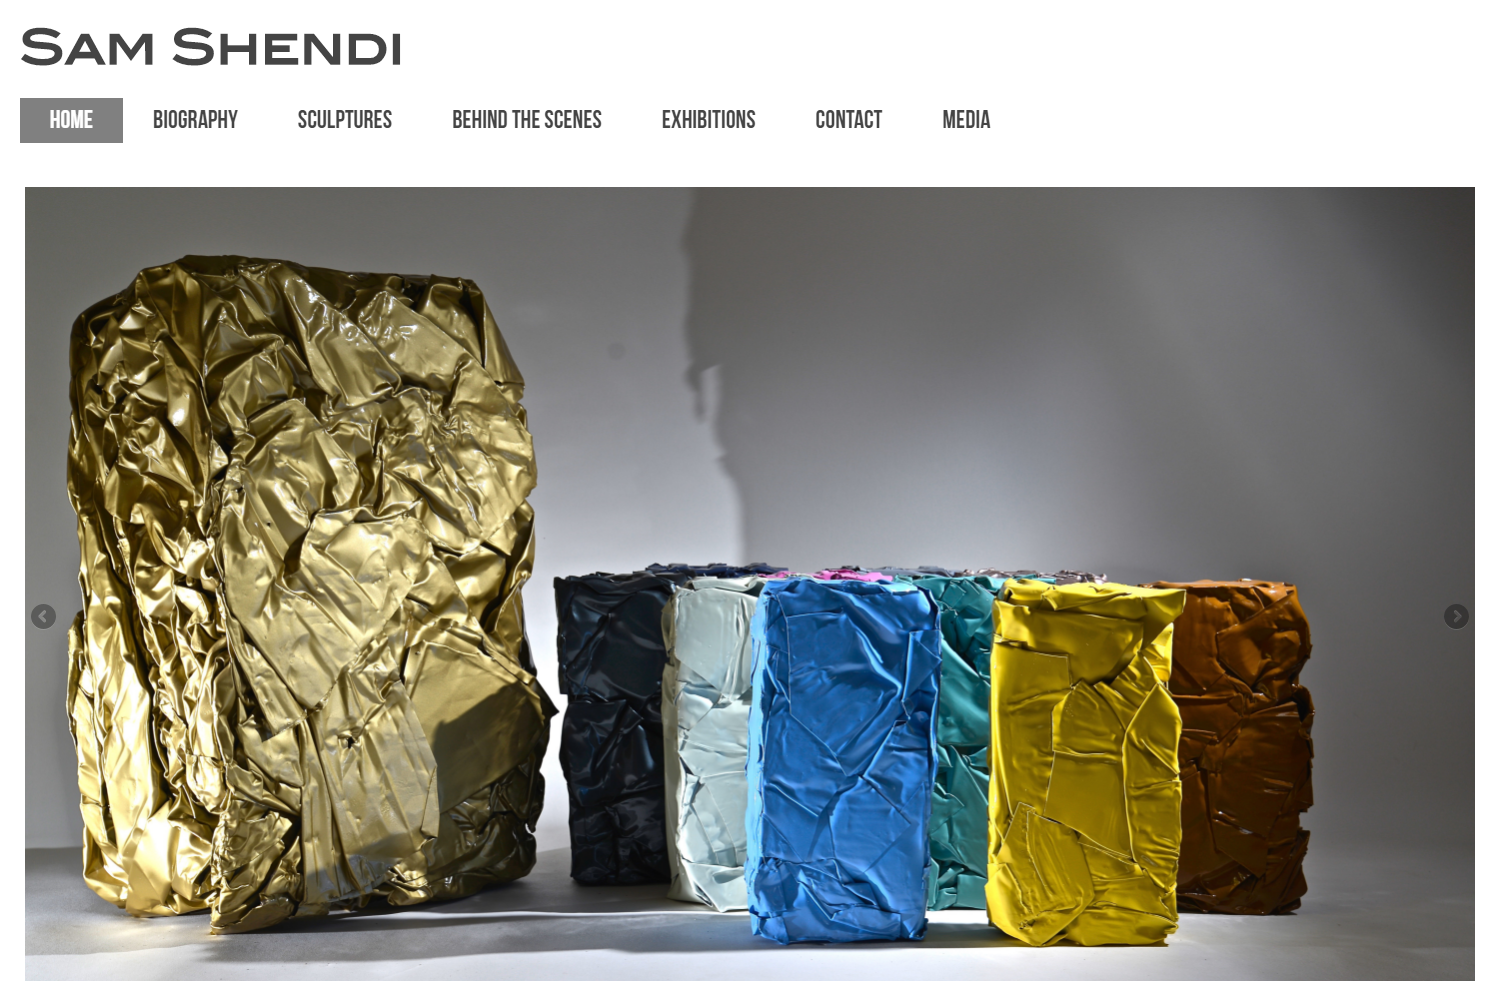 Sam Shendi Website